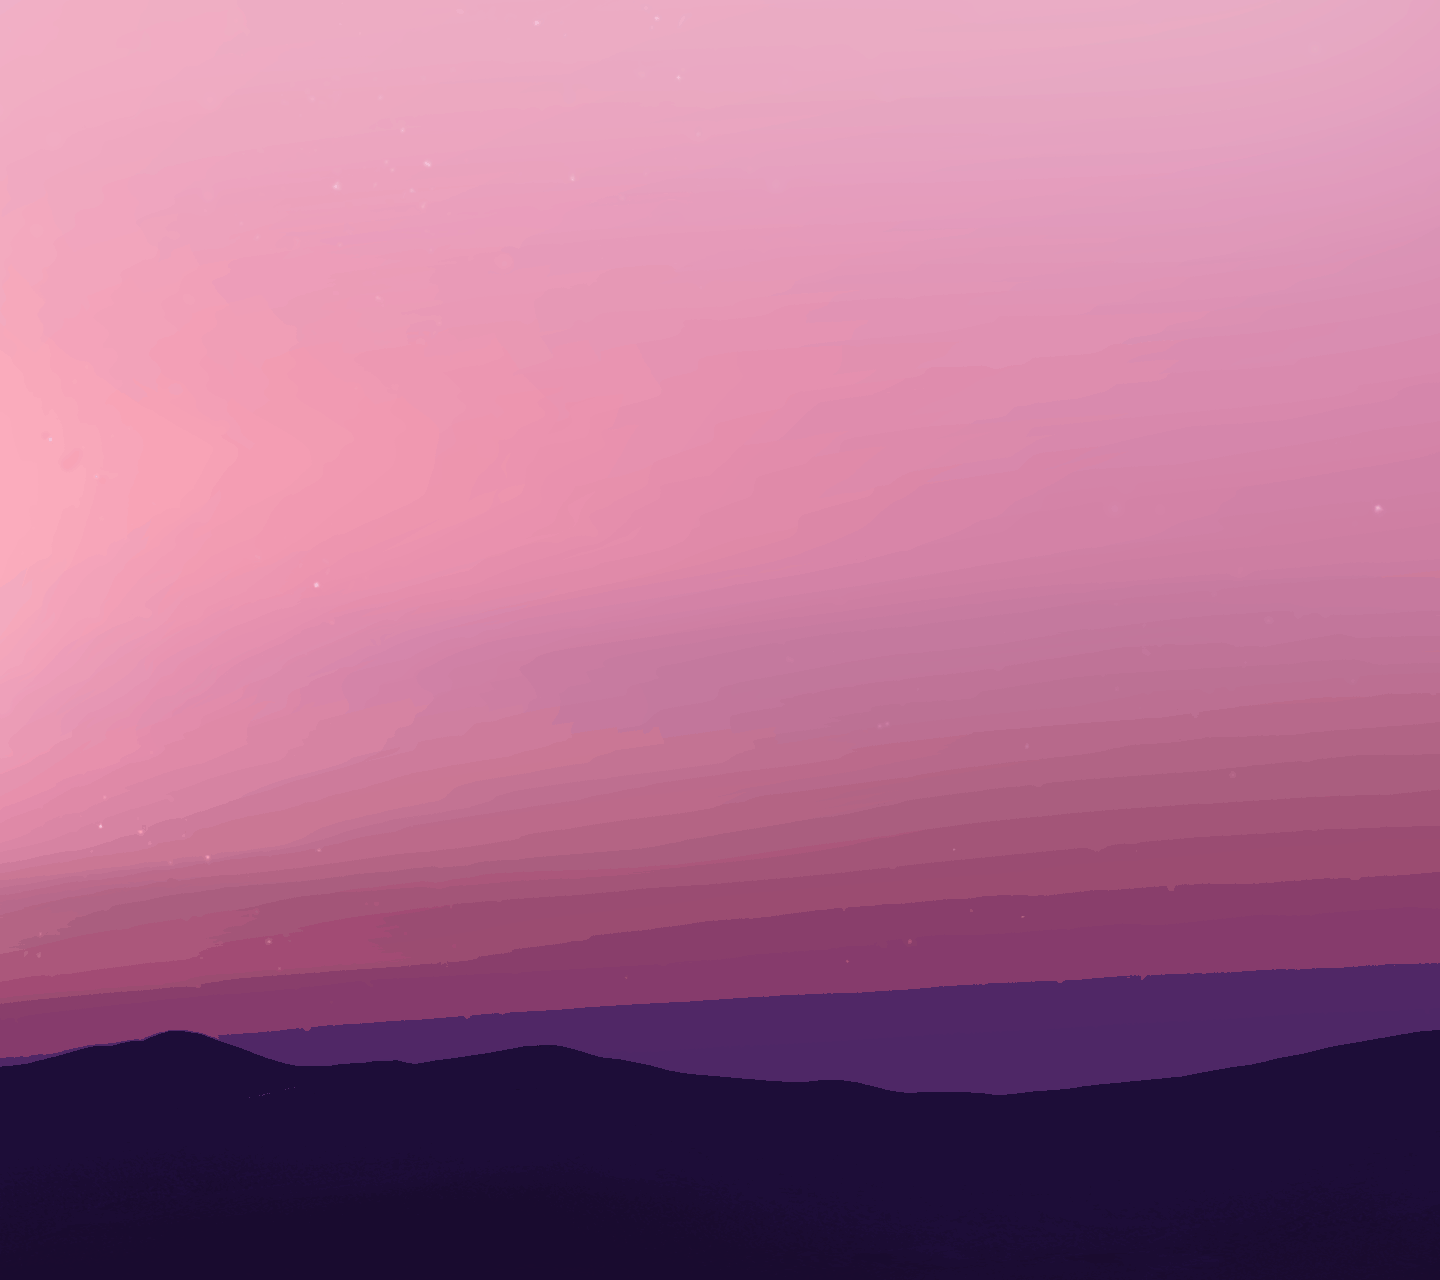 Android N Wallpaper